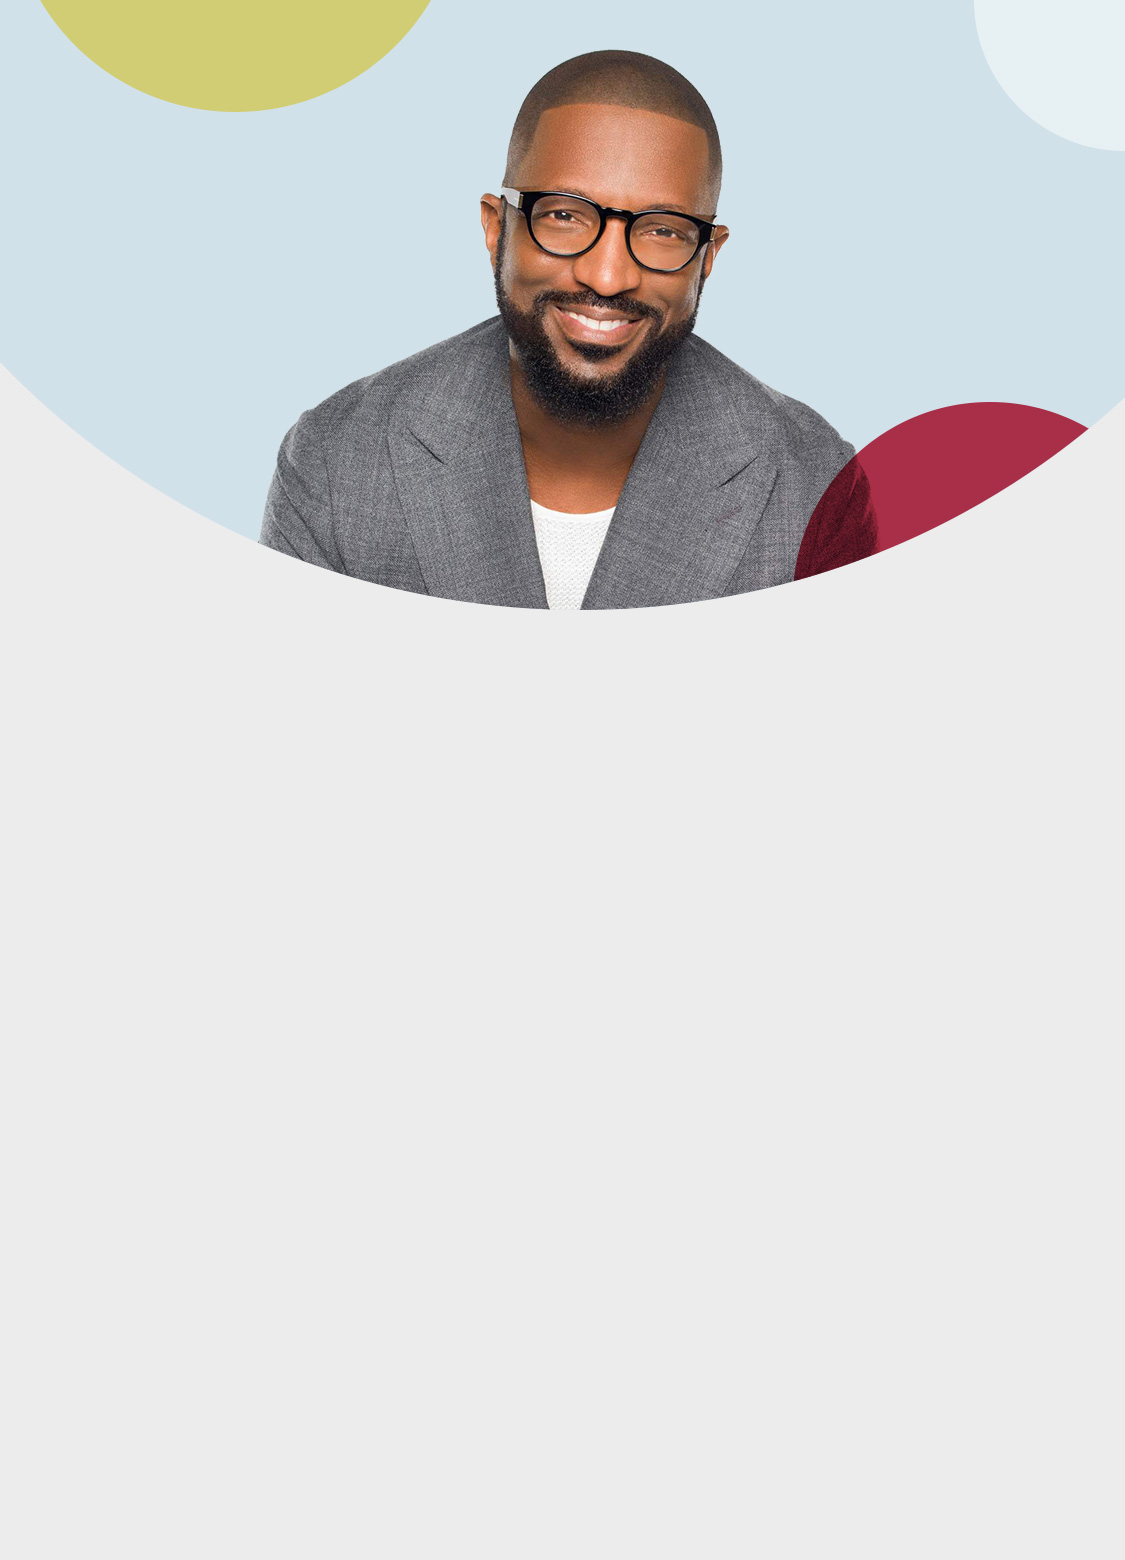 Rickey Smiley wearing eyeglasses